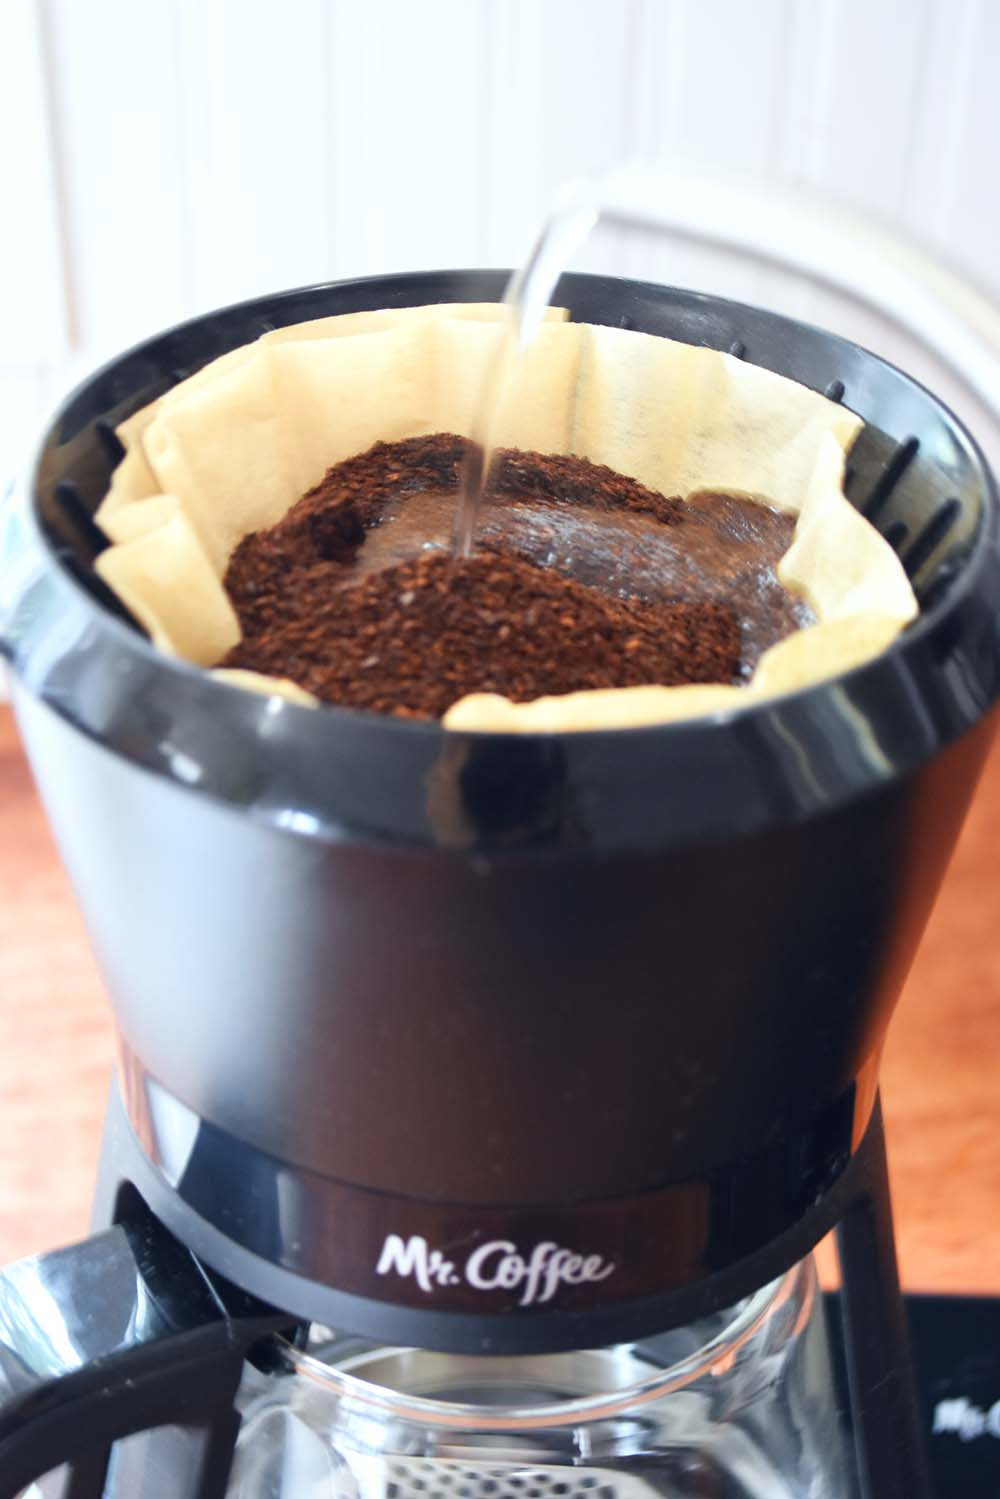 Pouring water into the Mr.Coffee Pour Over